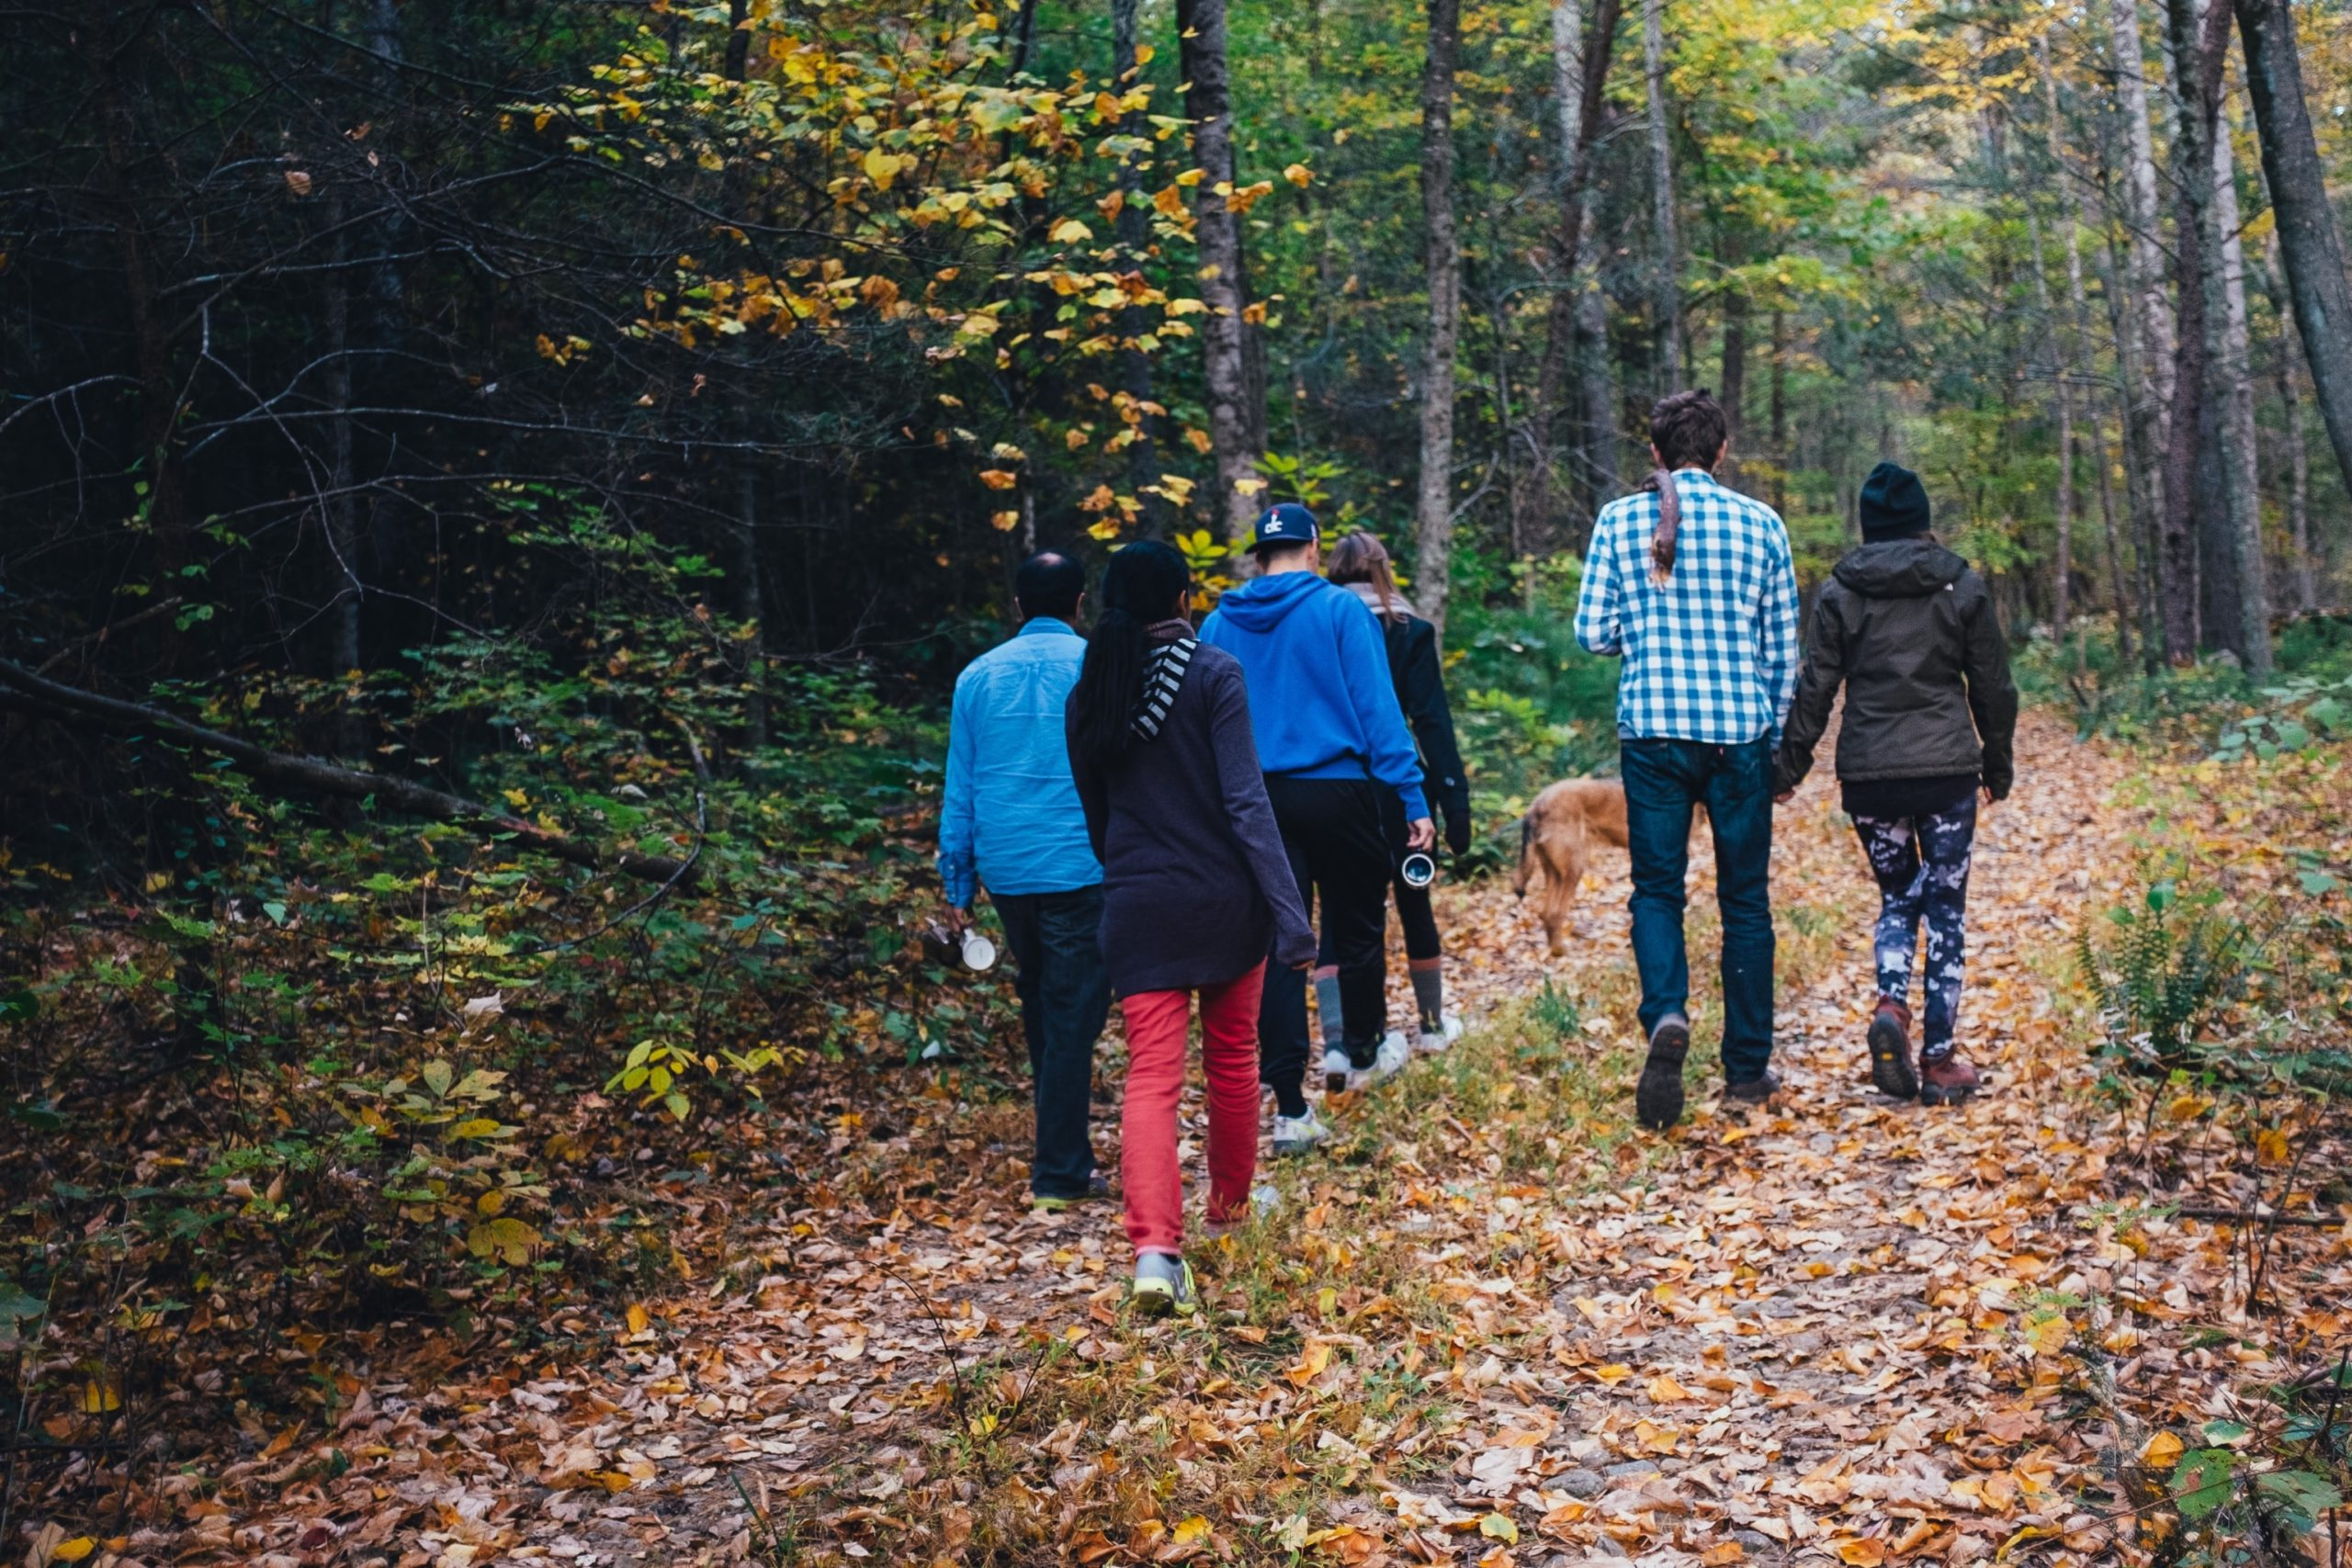 A group of people walking on a trail.